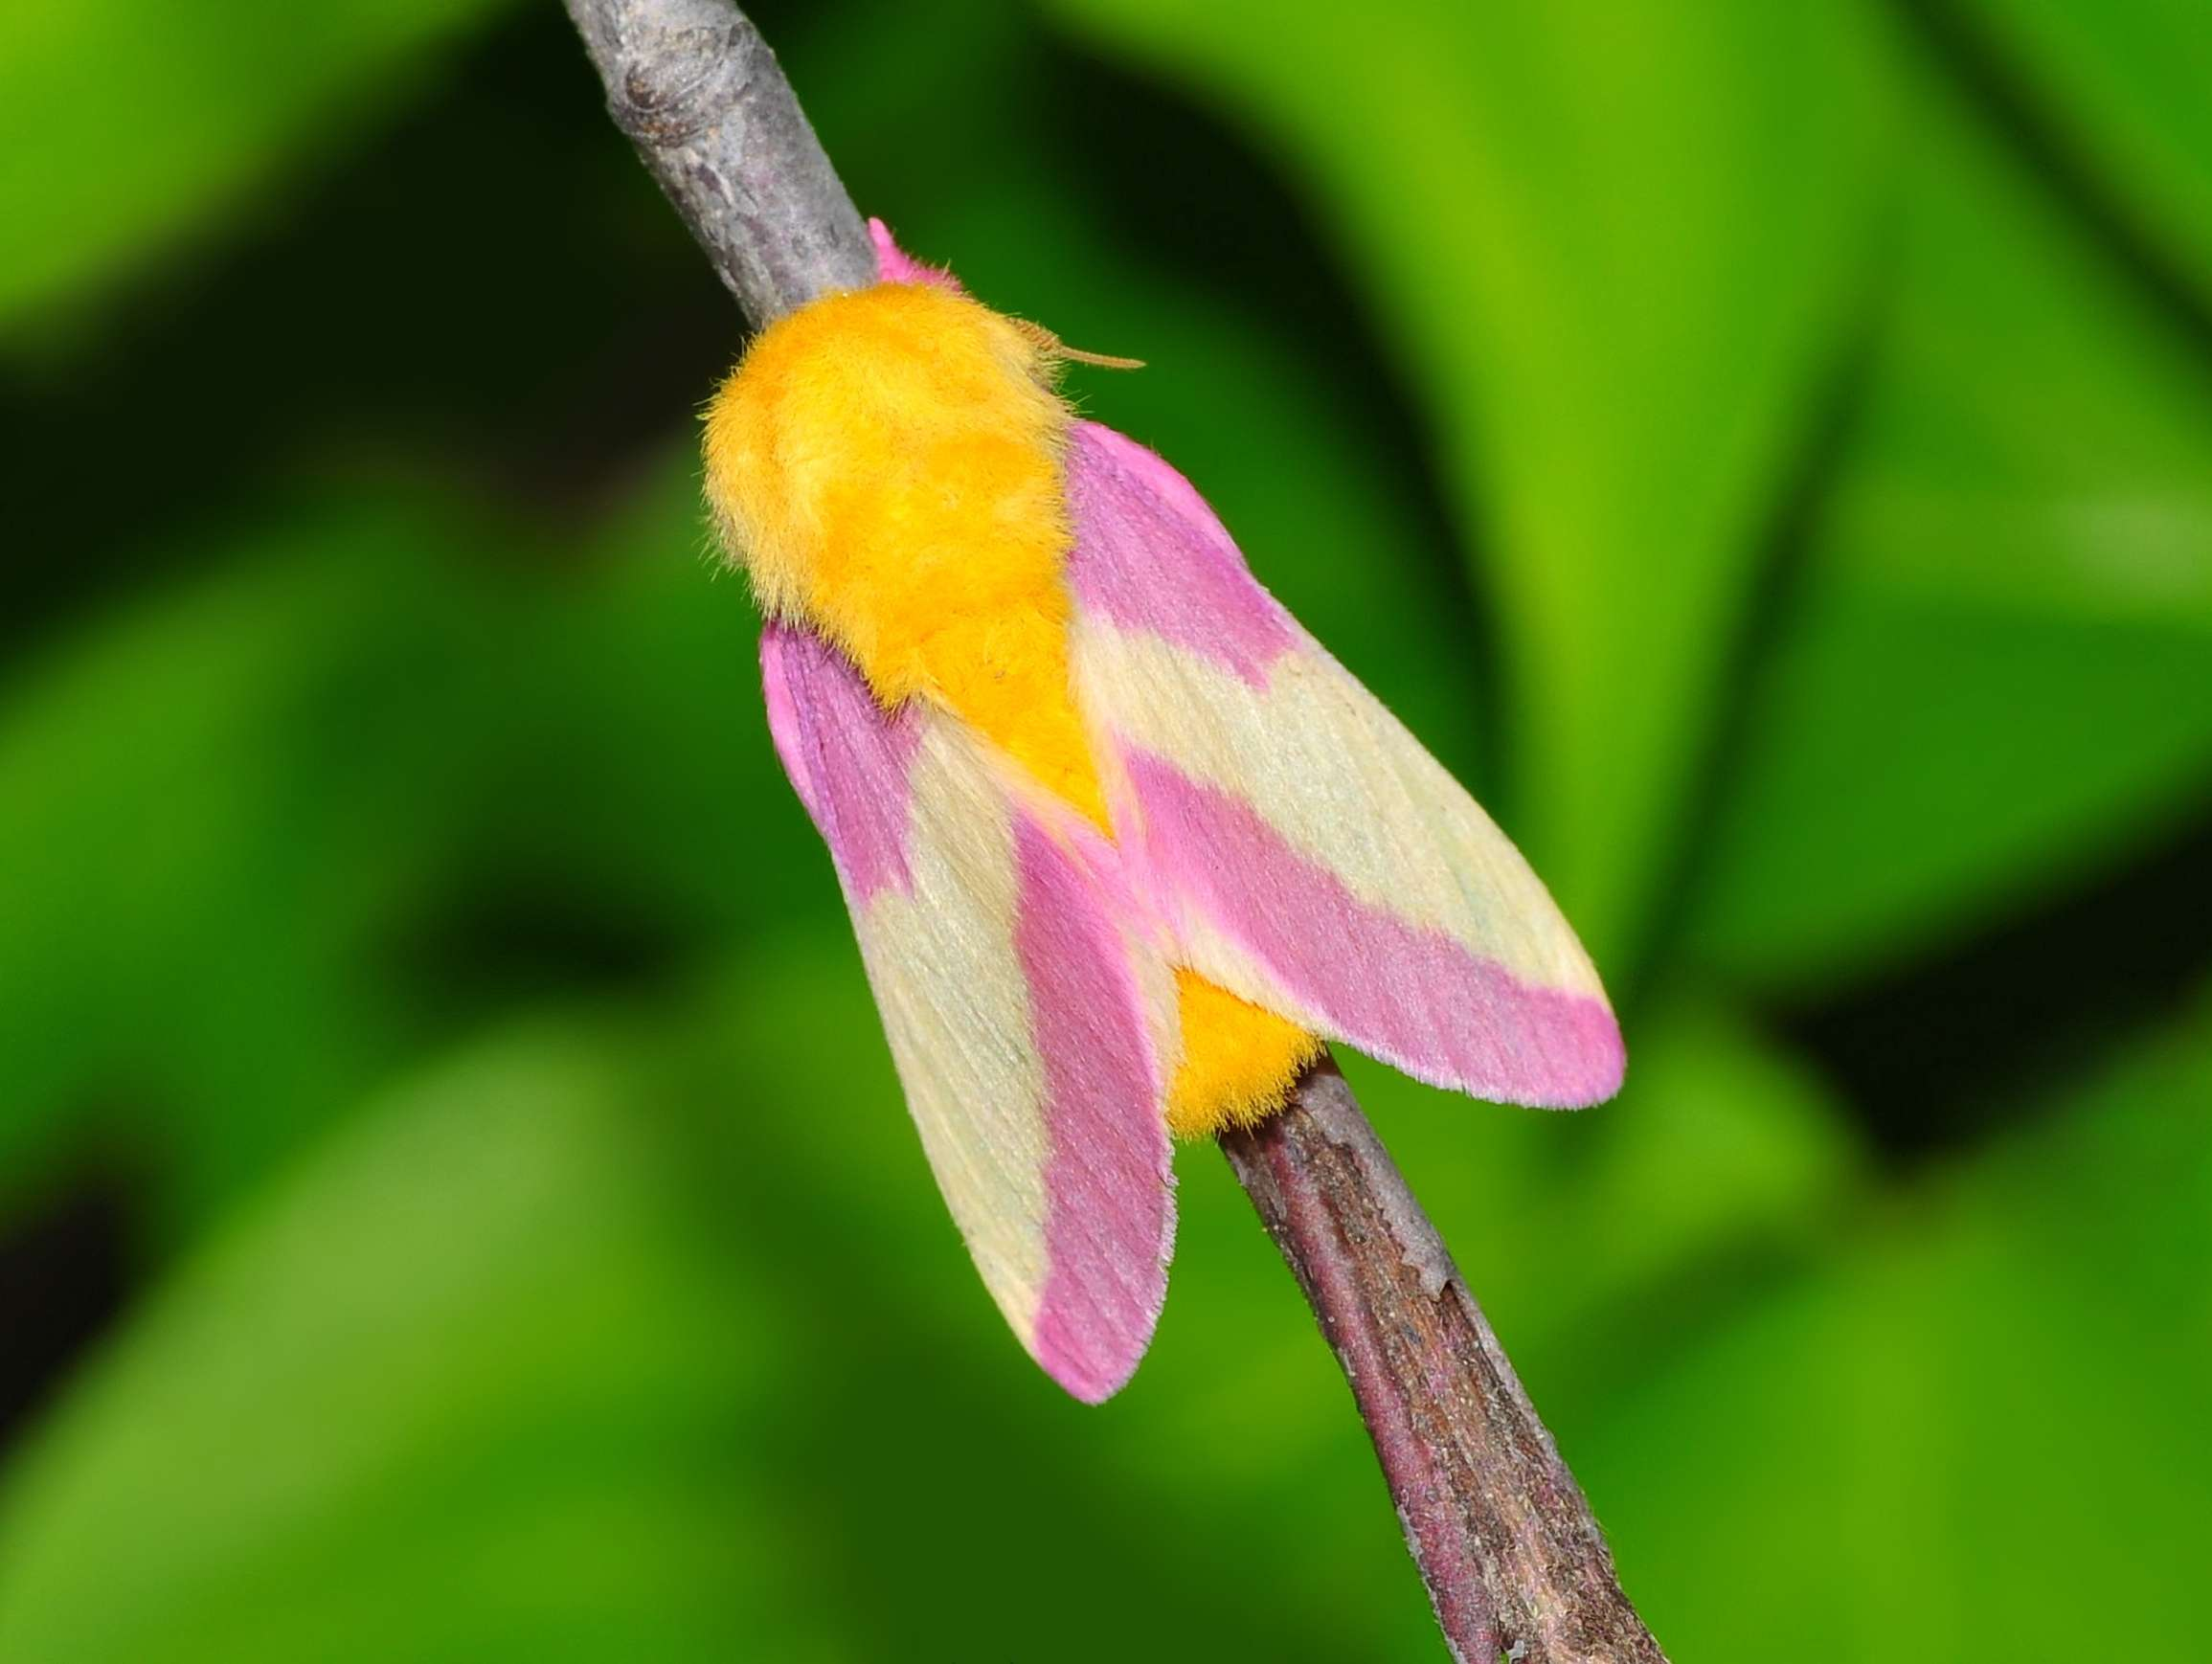 A moth with pink and white wings and a furry yellow abdomen sits on a branch